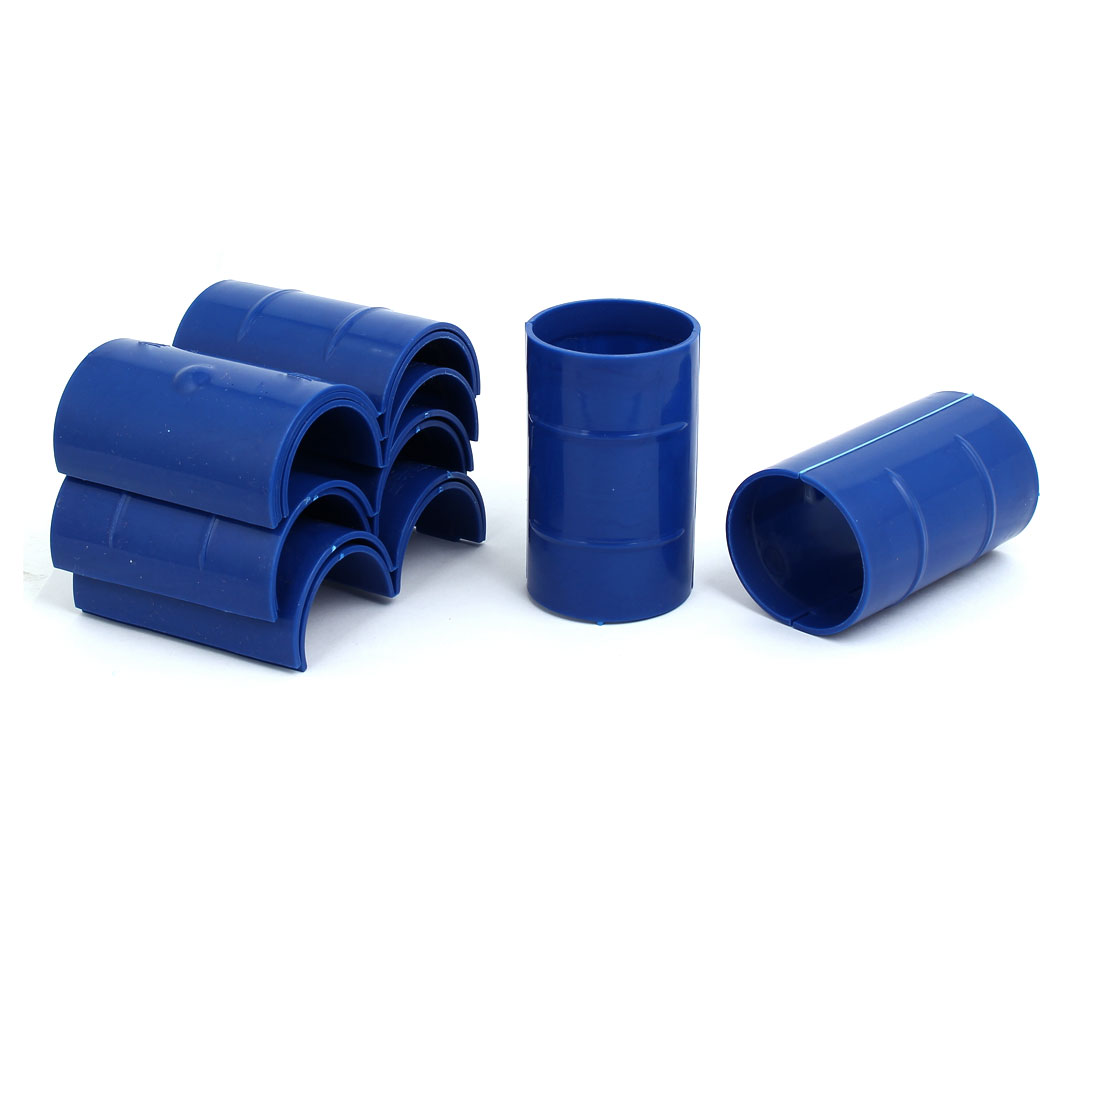 50mm Dia 2mm Thickness Central Air Conditioning Pipe Tube Clamp Blue 9pcs